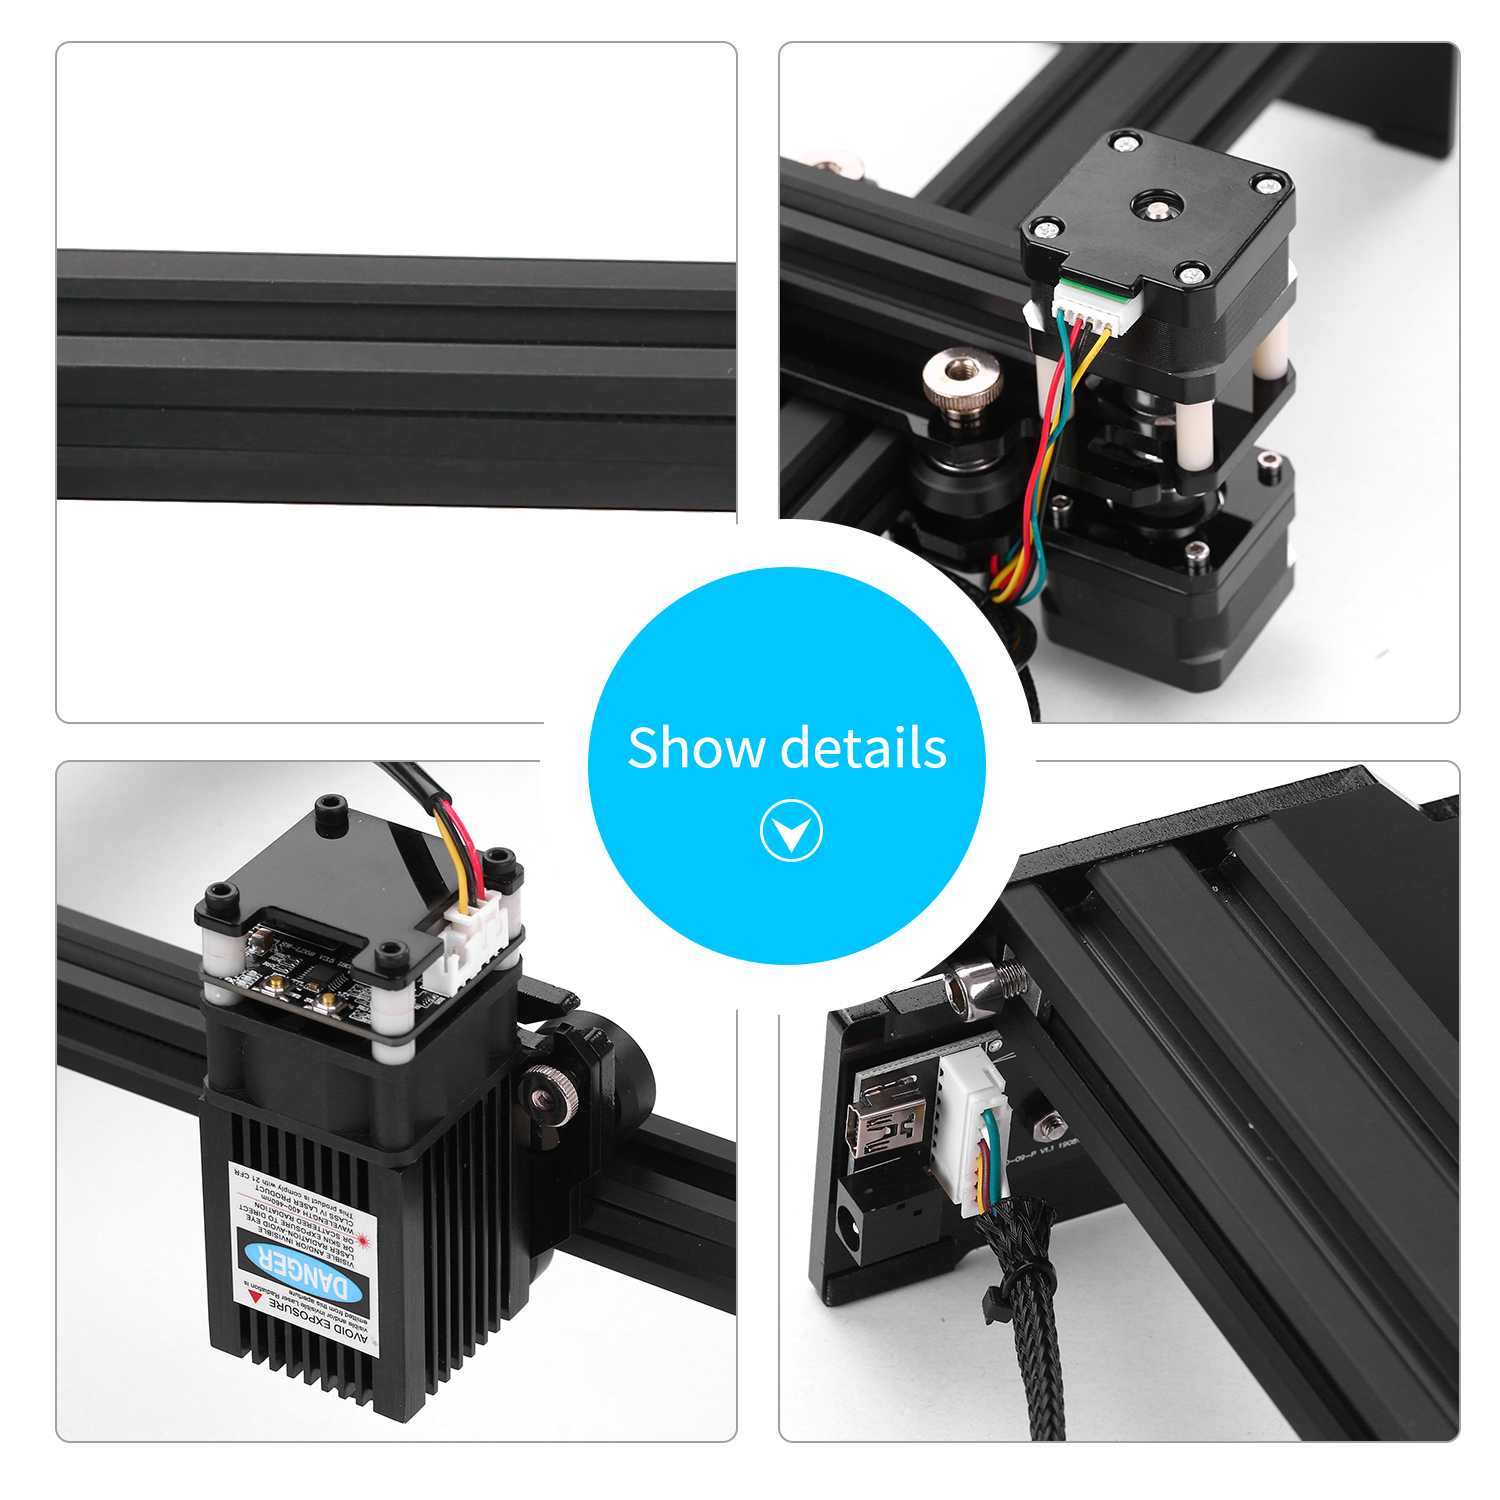 VG-L7 CNC Engraving Machine/CNC Laser Engraver With USB Interface 5